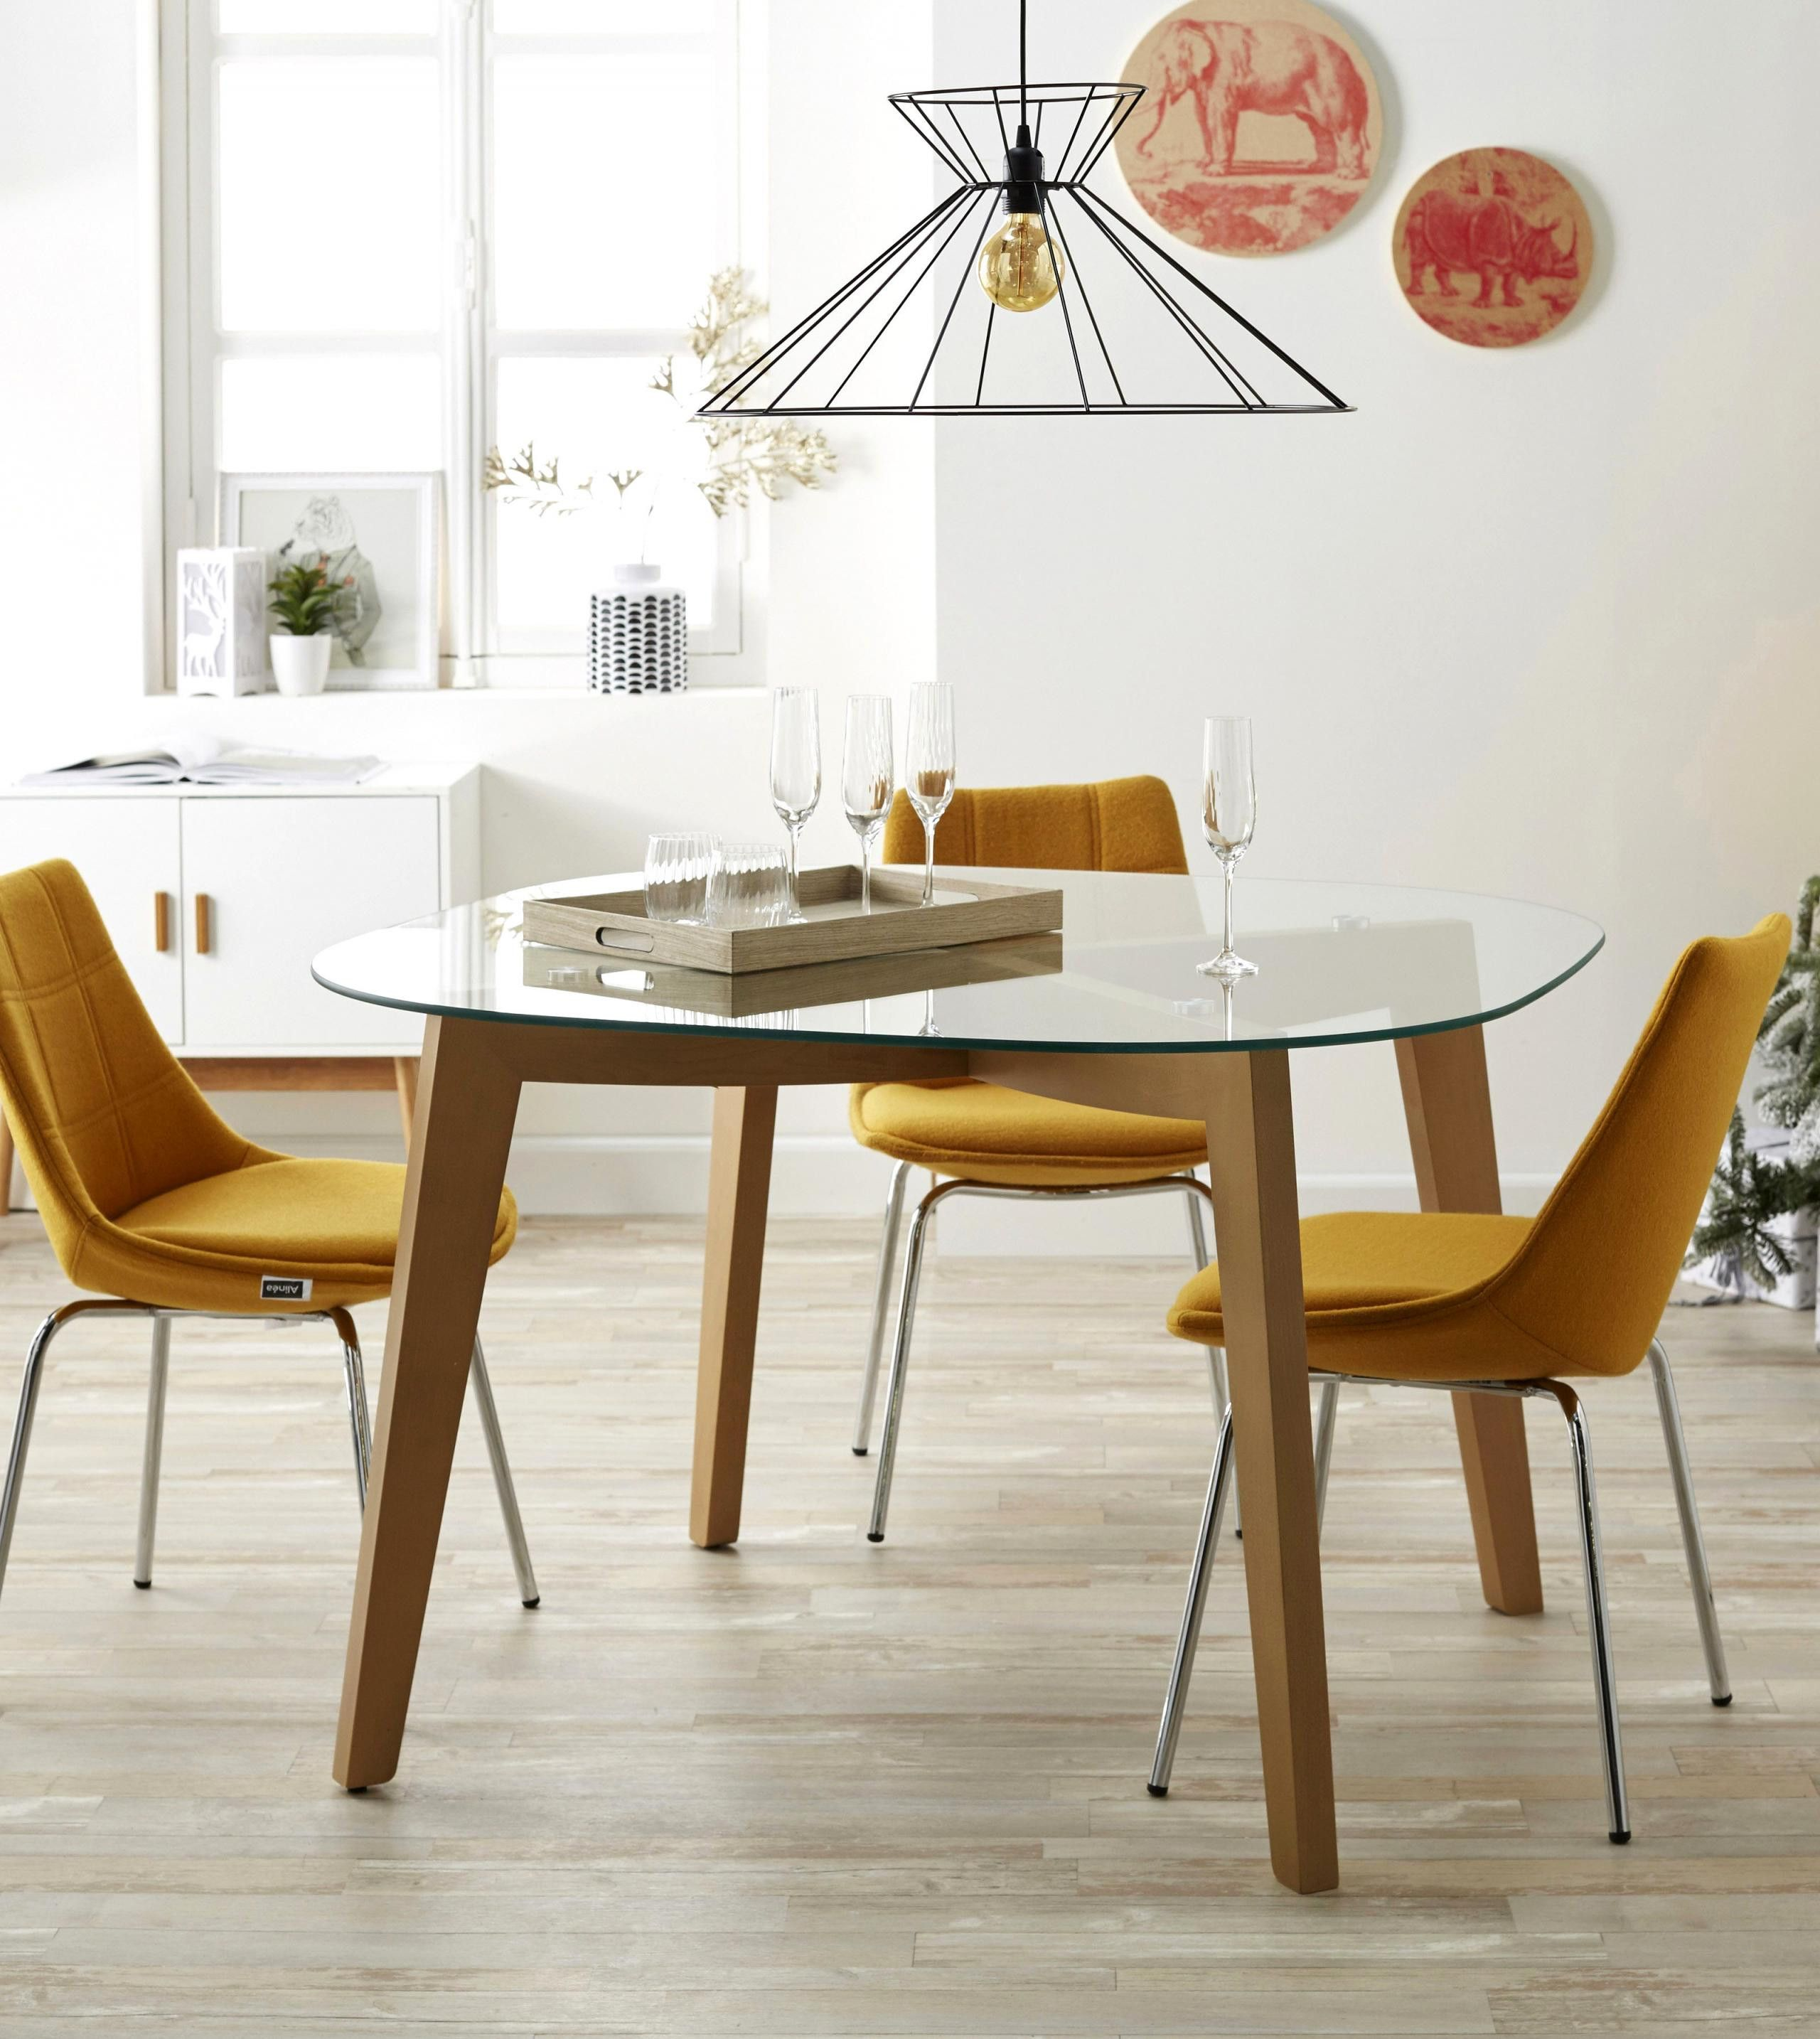 Inspirational Le Bon Coin Ajaccio Dining Furniture Round Glass Table Kitchen Design